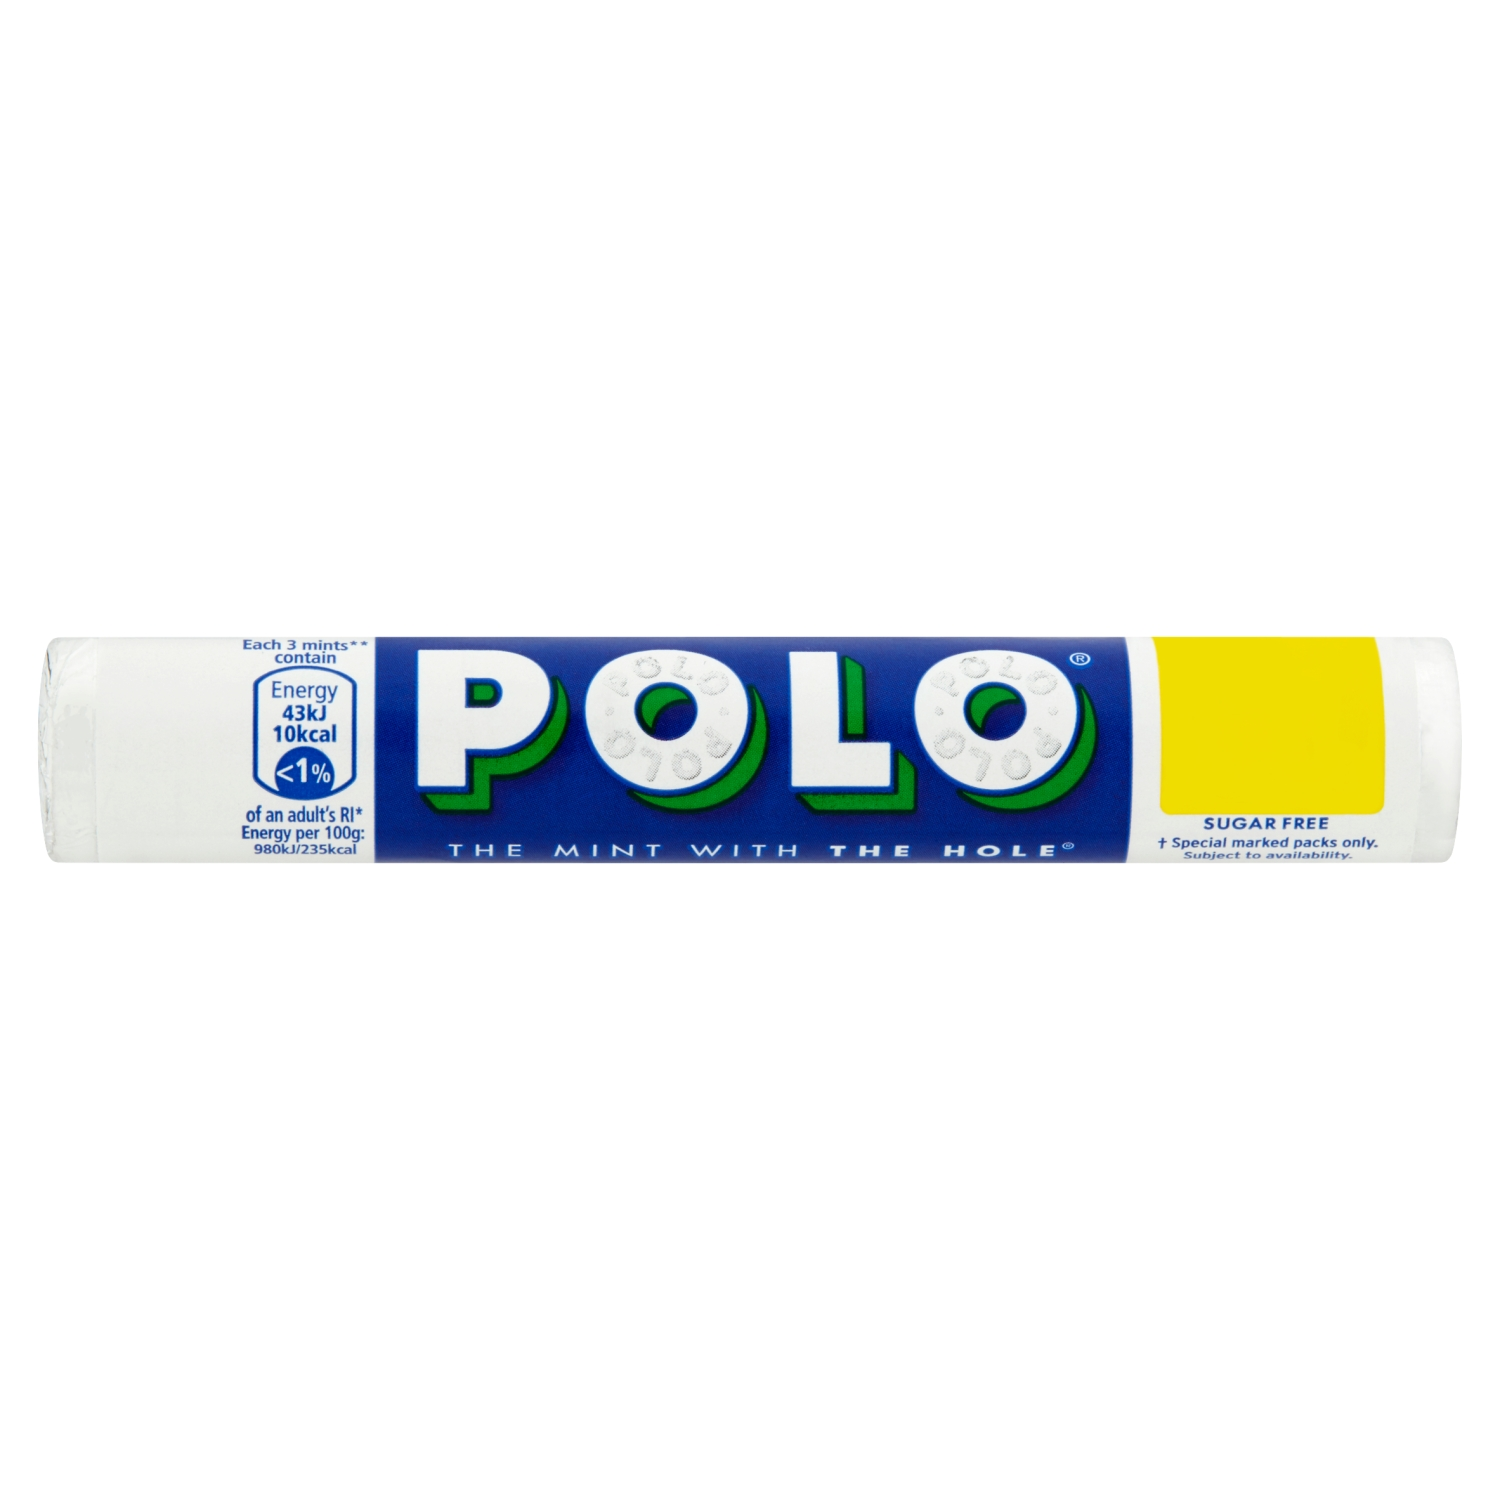 Polo Sugar Free Mint Tube 33.4g PMP 2 for £1